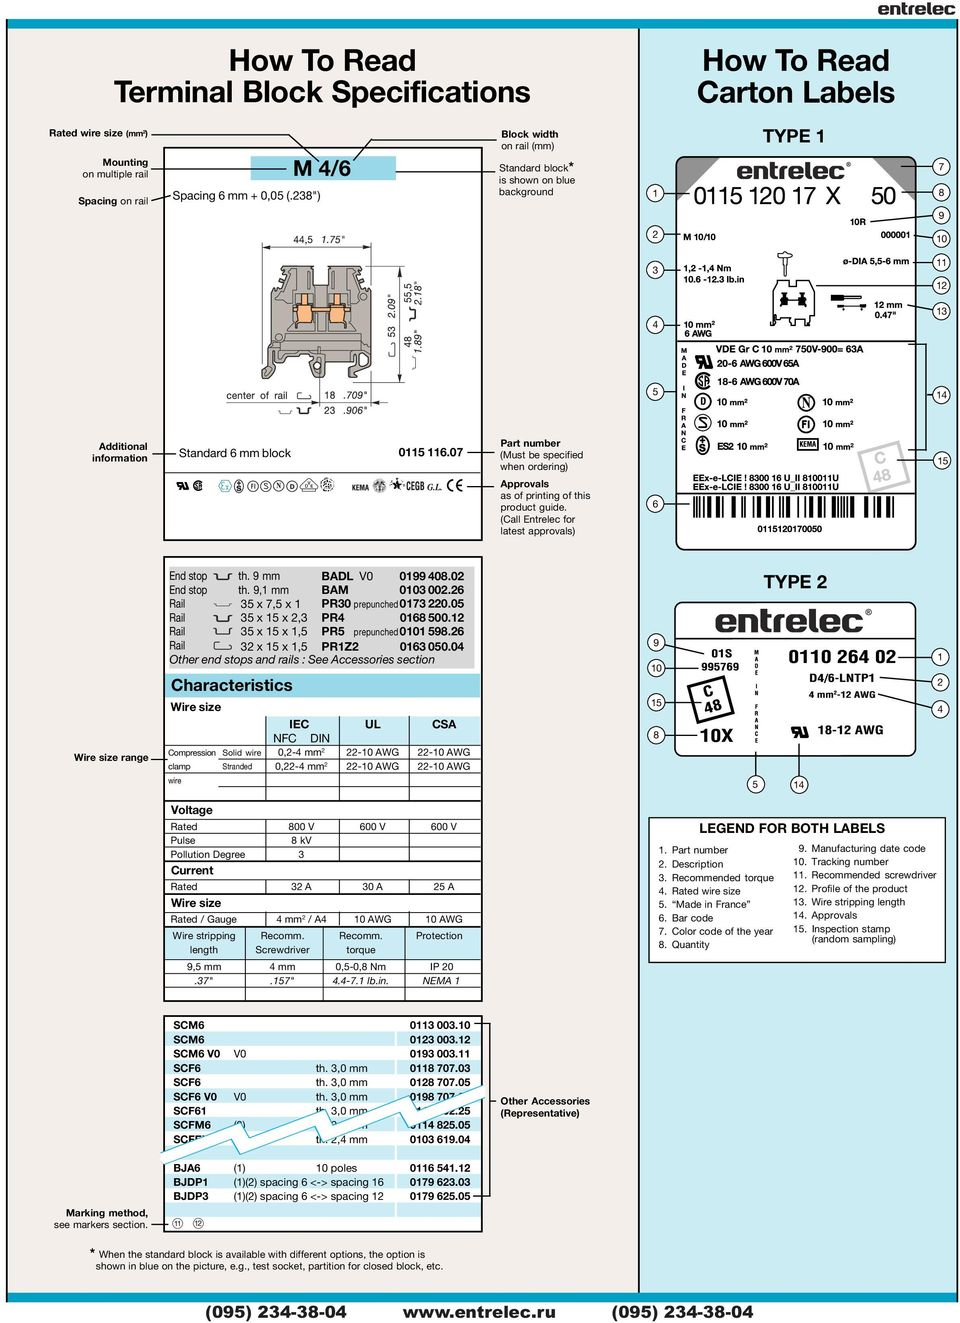 07 Part number (Must be specified when ordering) Approvals as of printing of this product guide. (Call Entrelec for latest approvals) 6 5 Wire size range End stop th. mm BADL V0 0 0.0 End stop th.